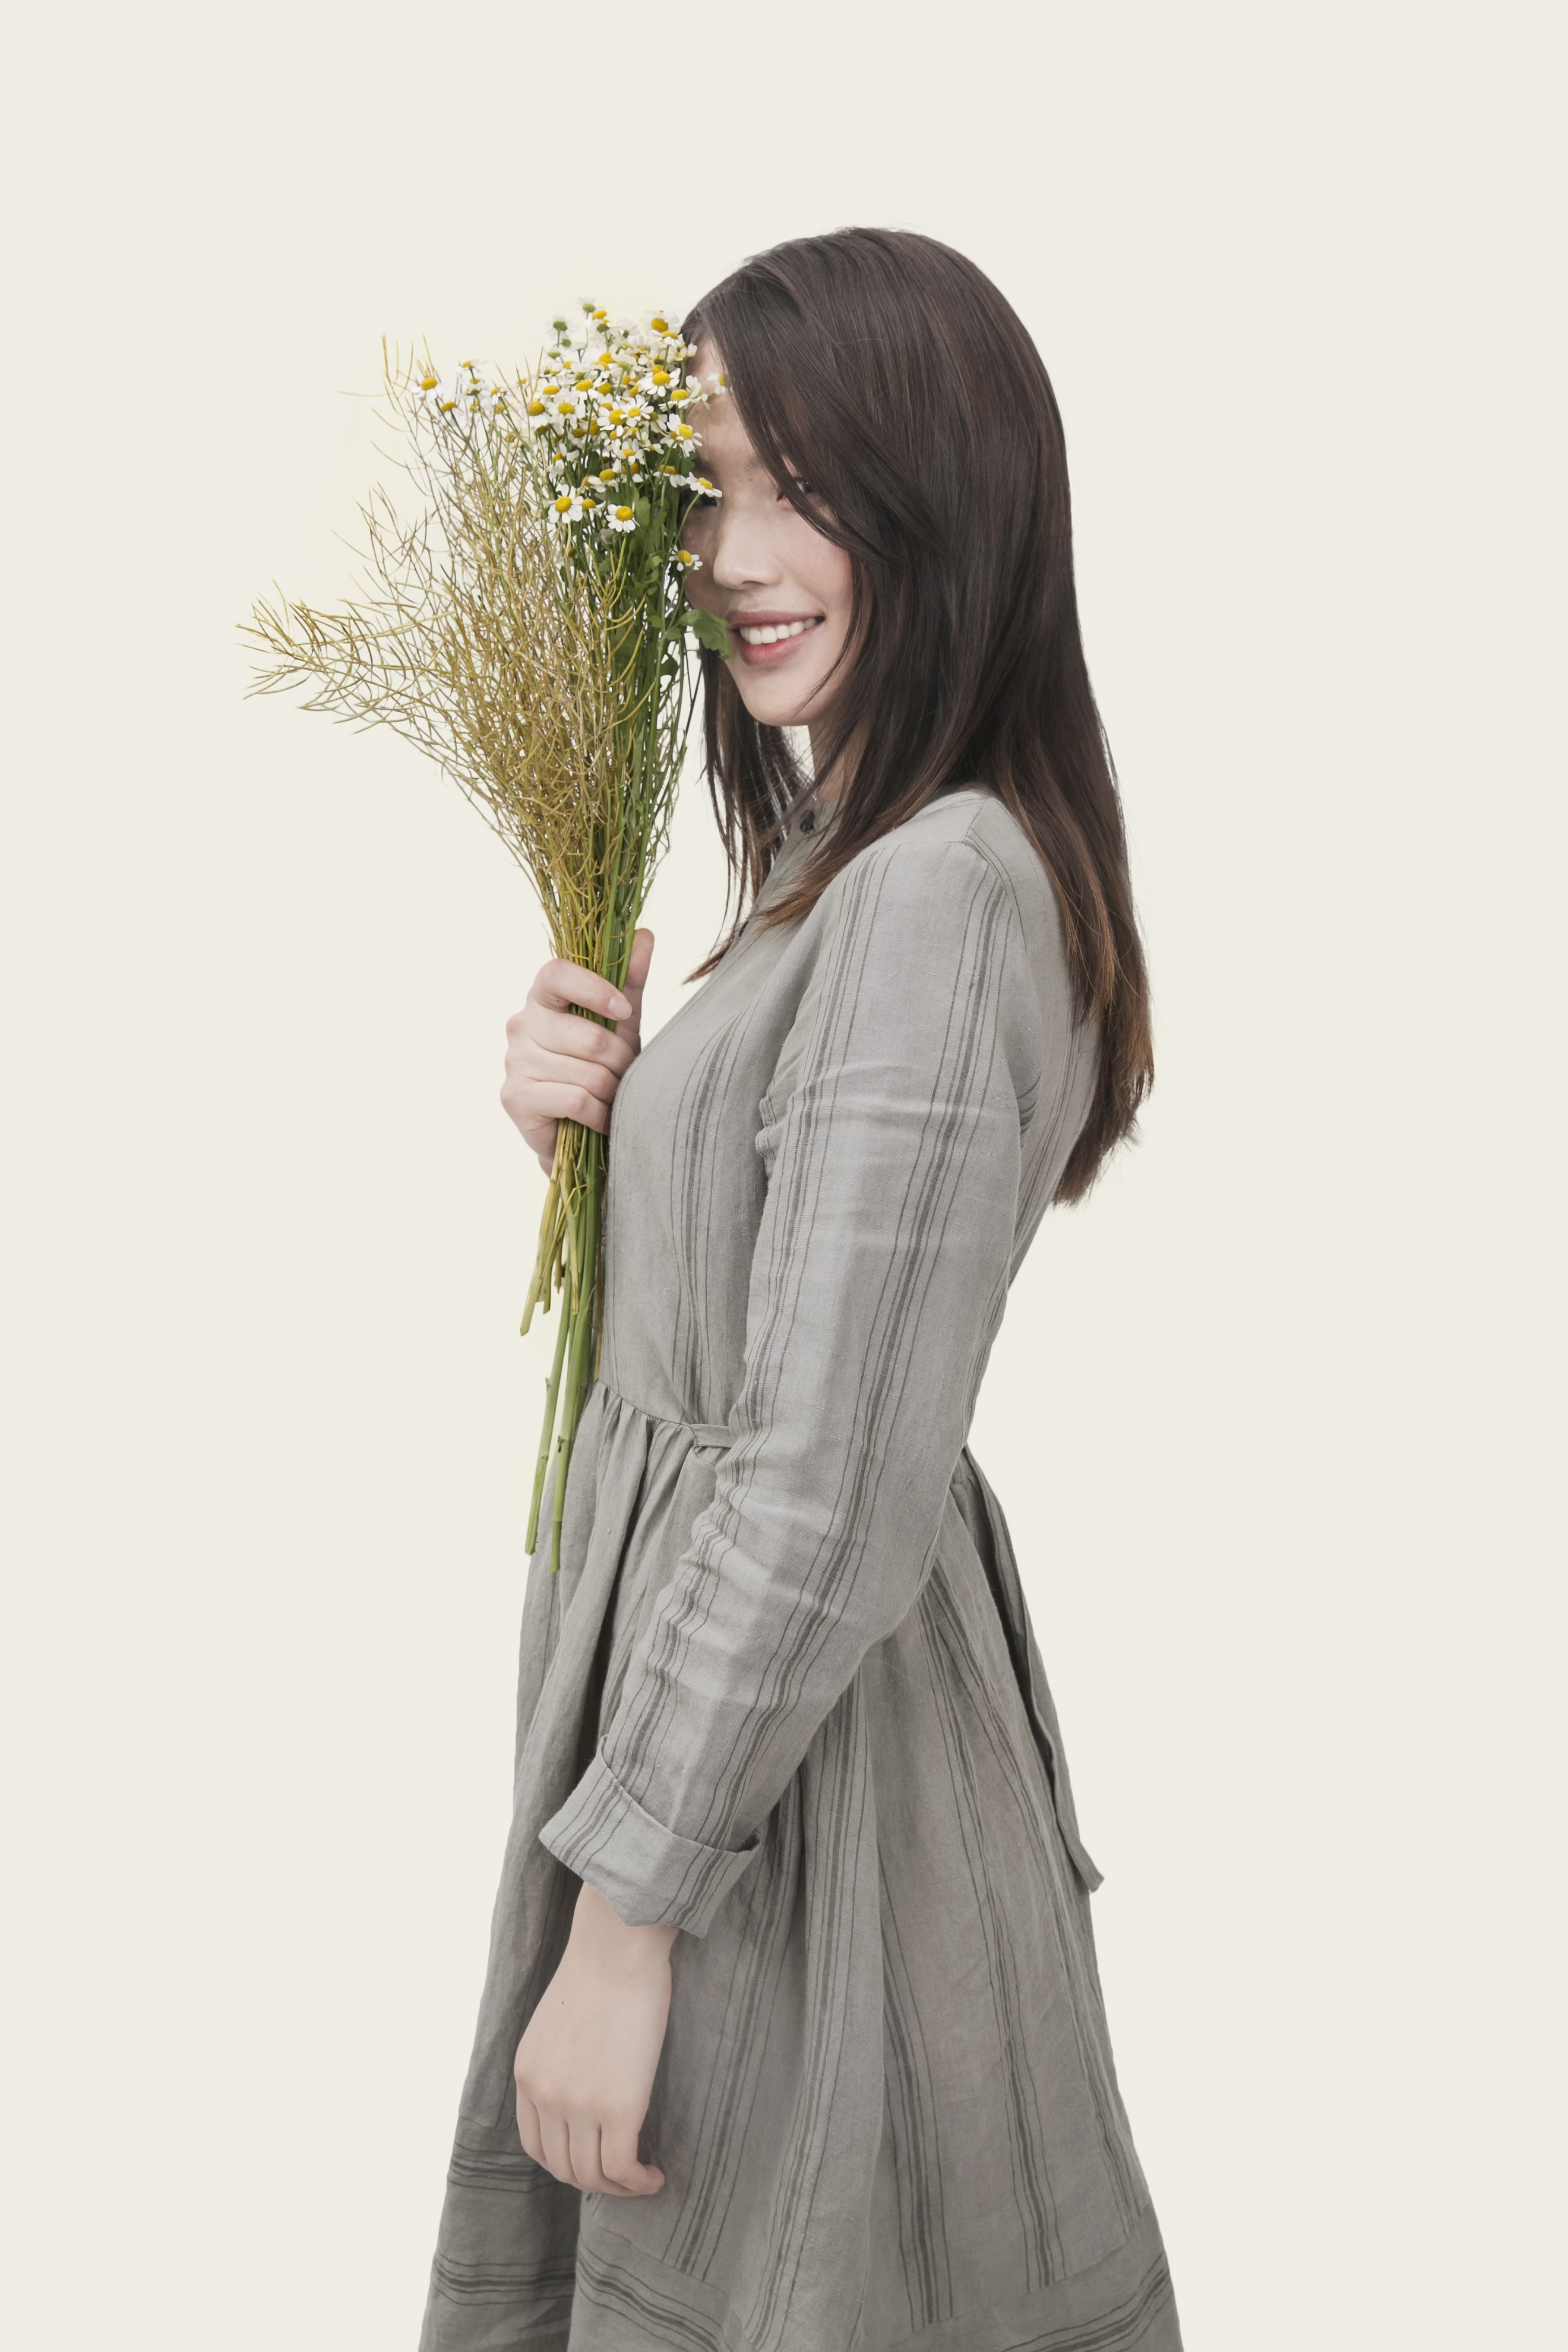 A happy Asian woman looking at the camera while holding a bouquet of flowers.